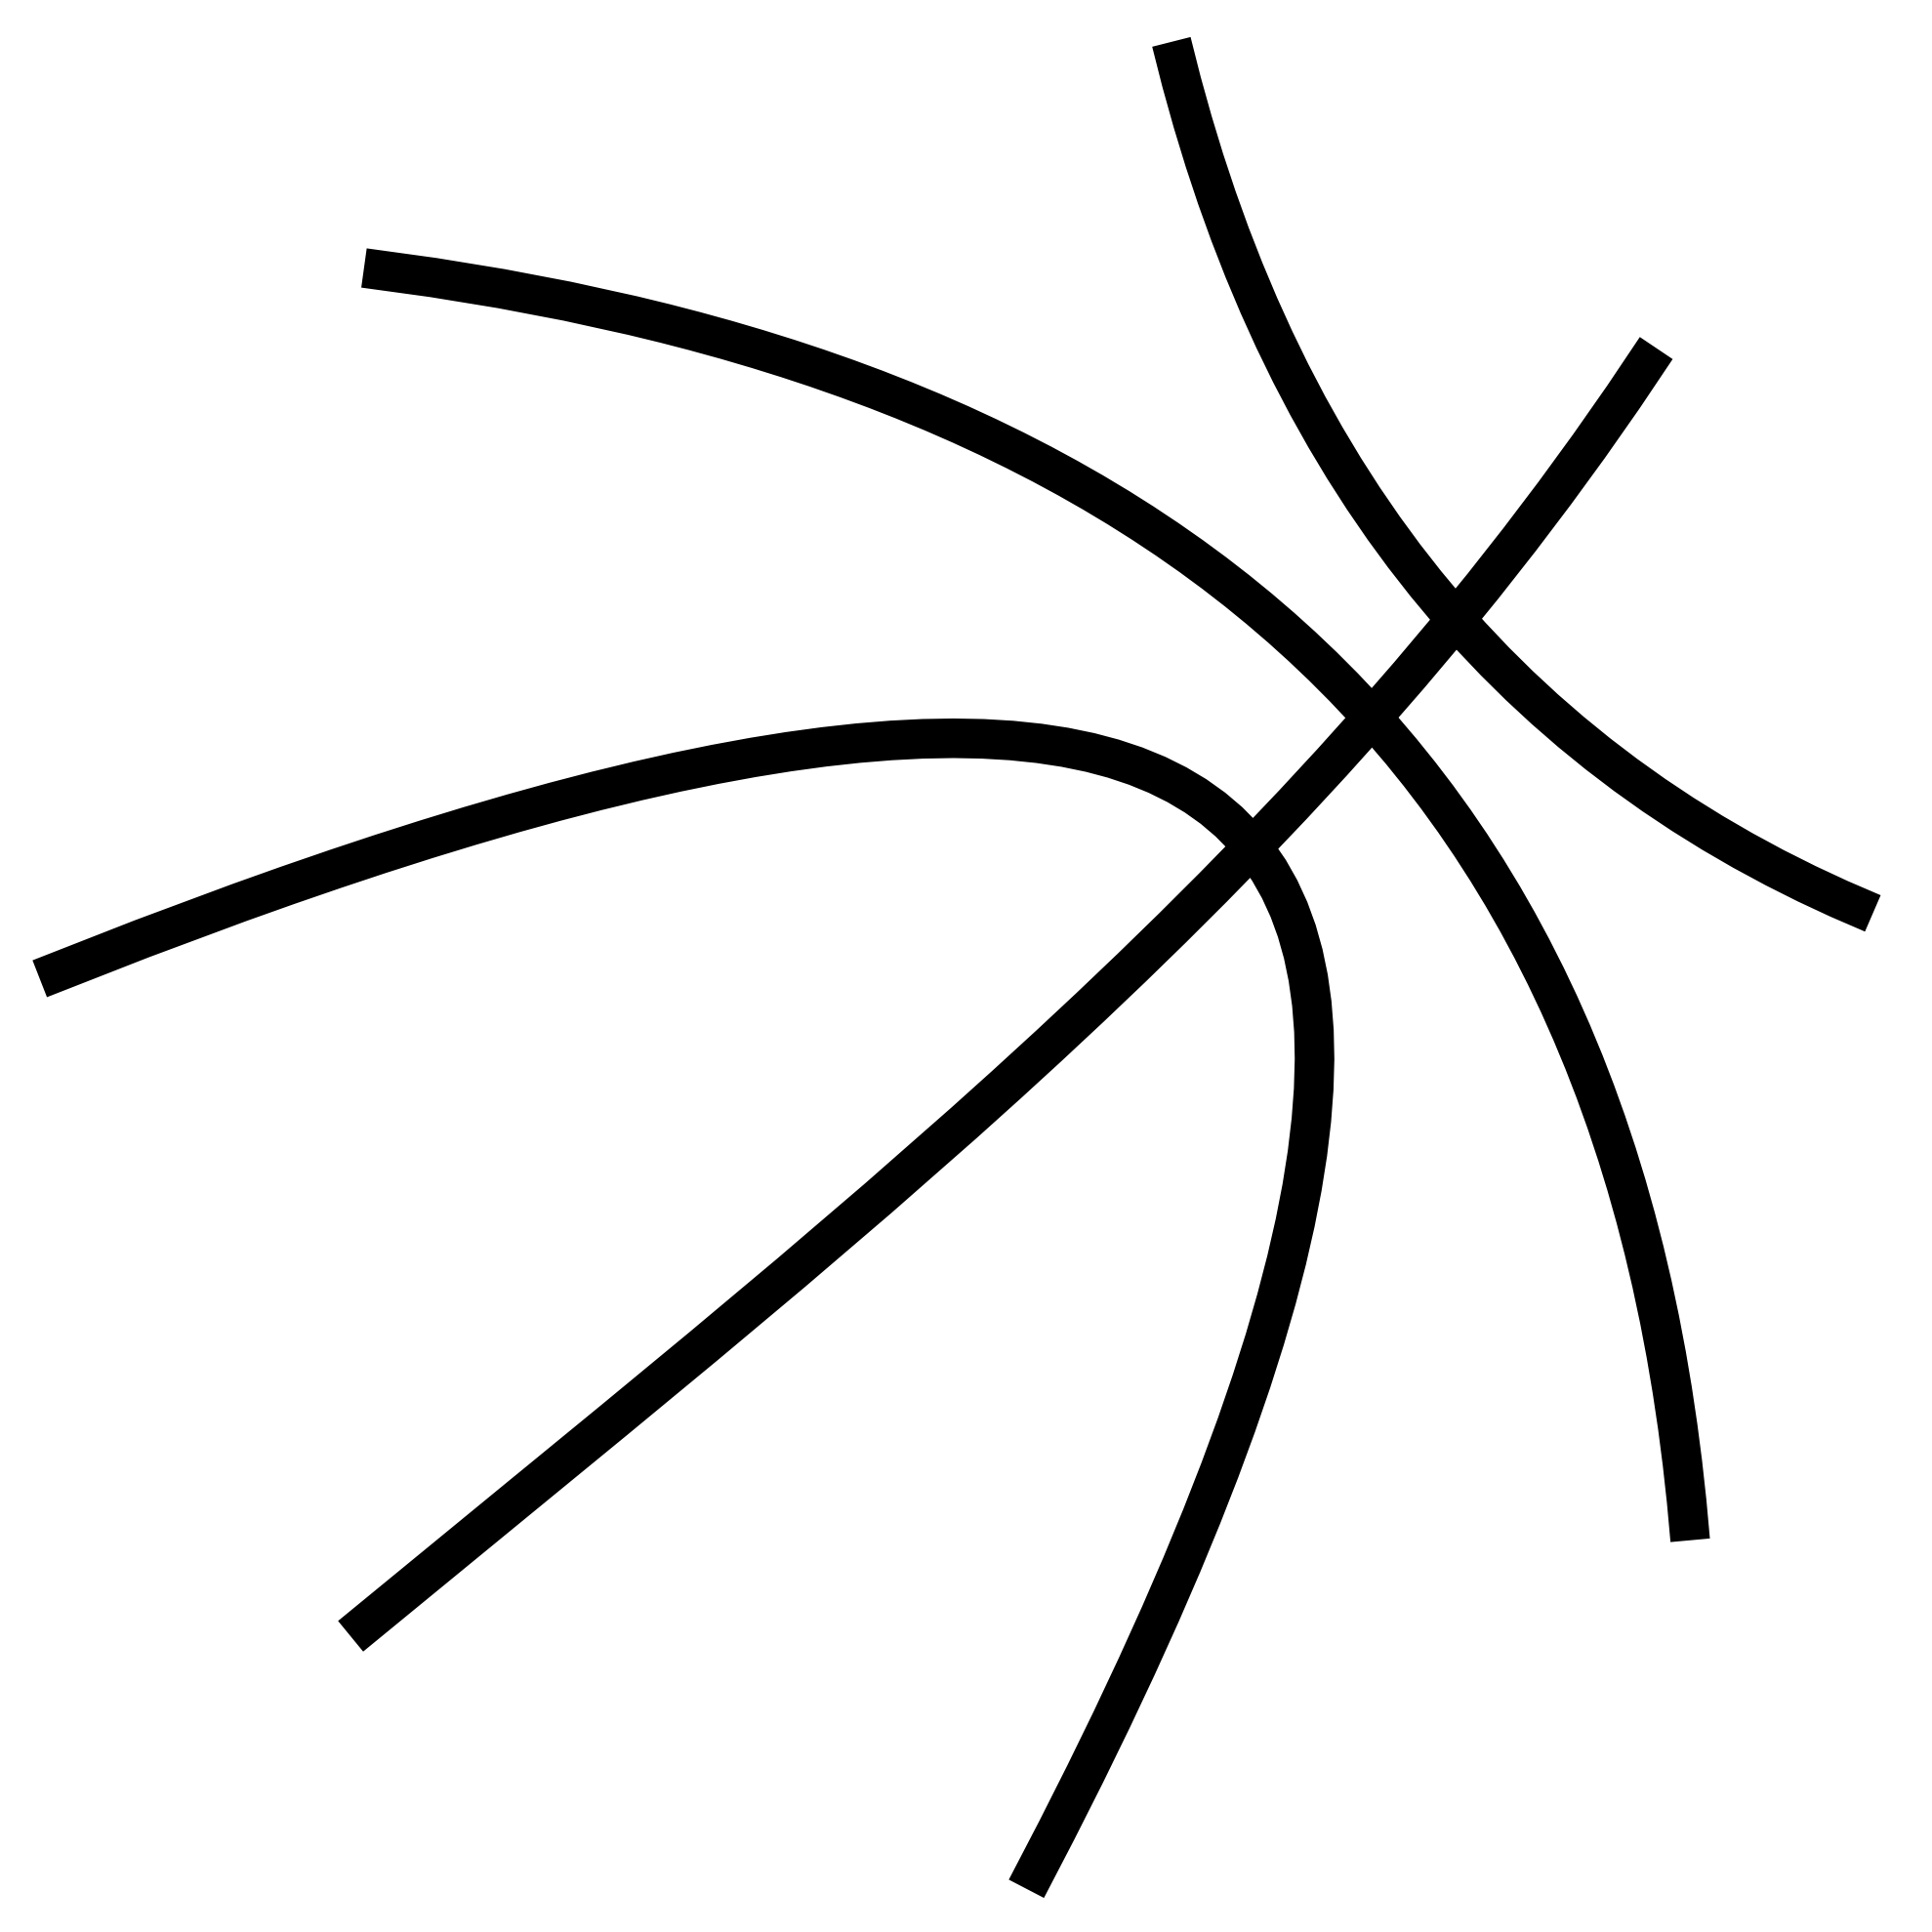 Basketball Clipart Black And White Clipart Panda